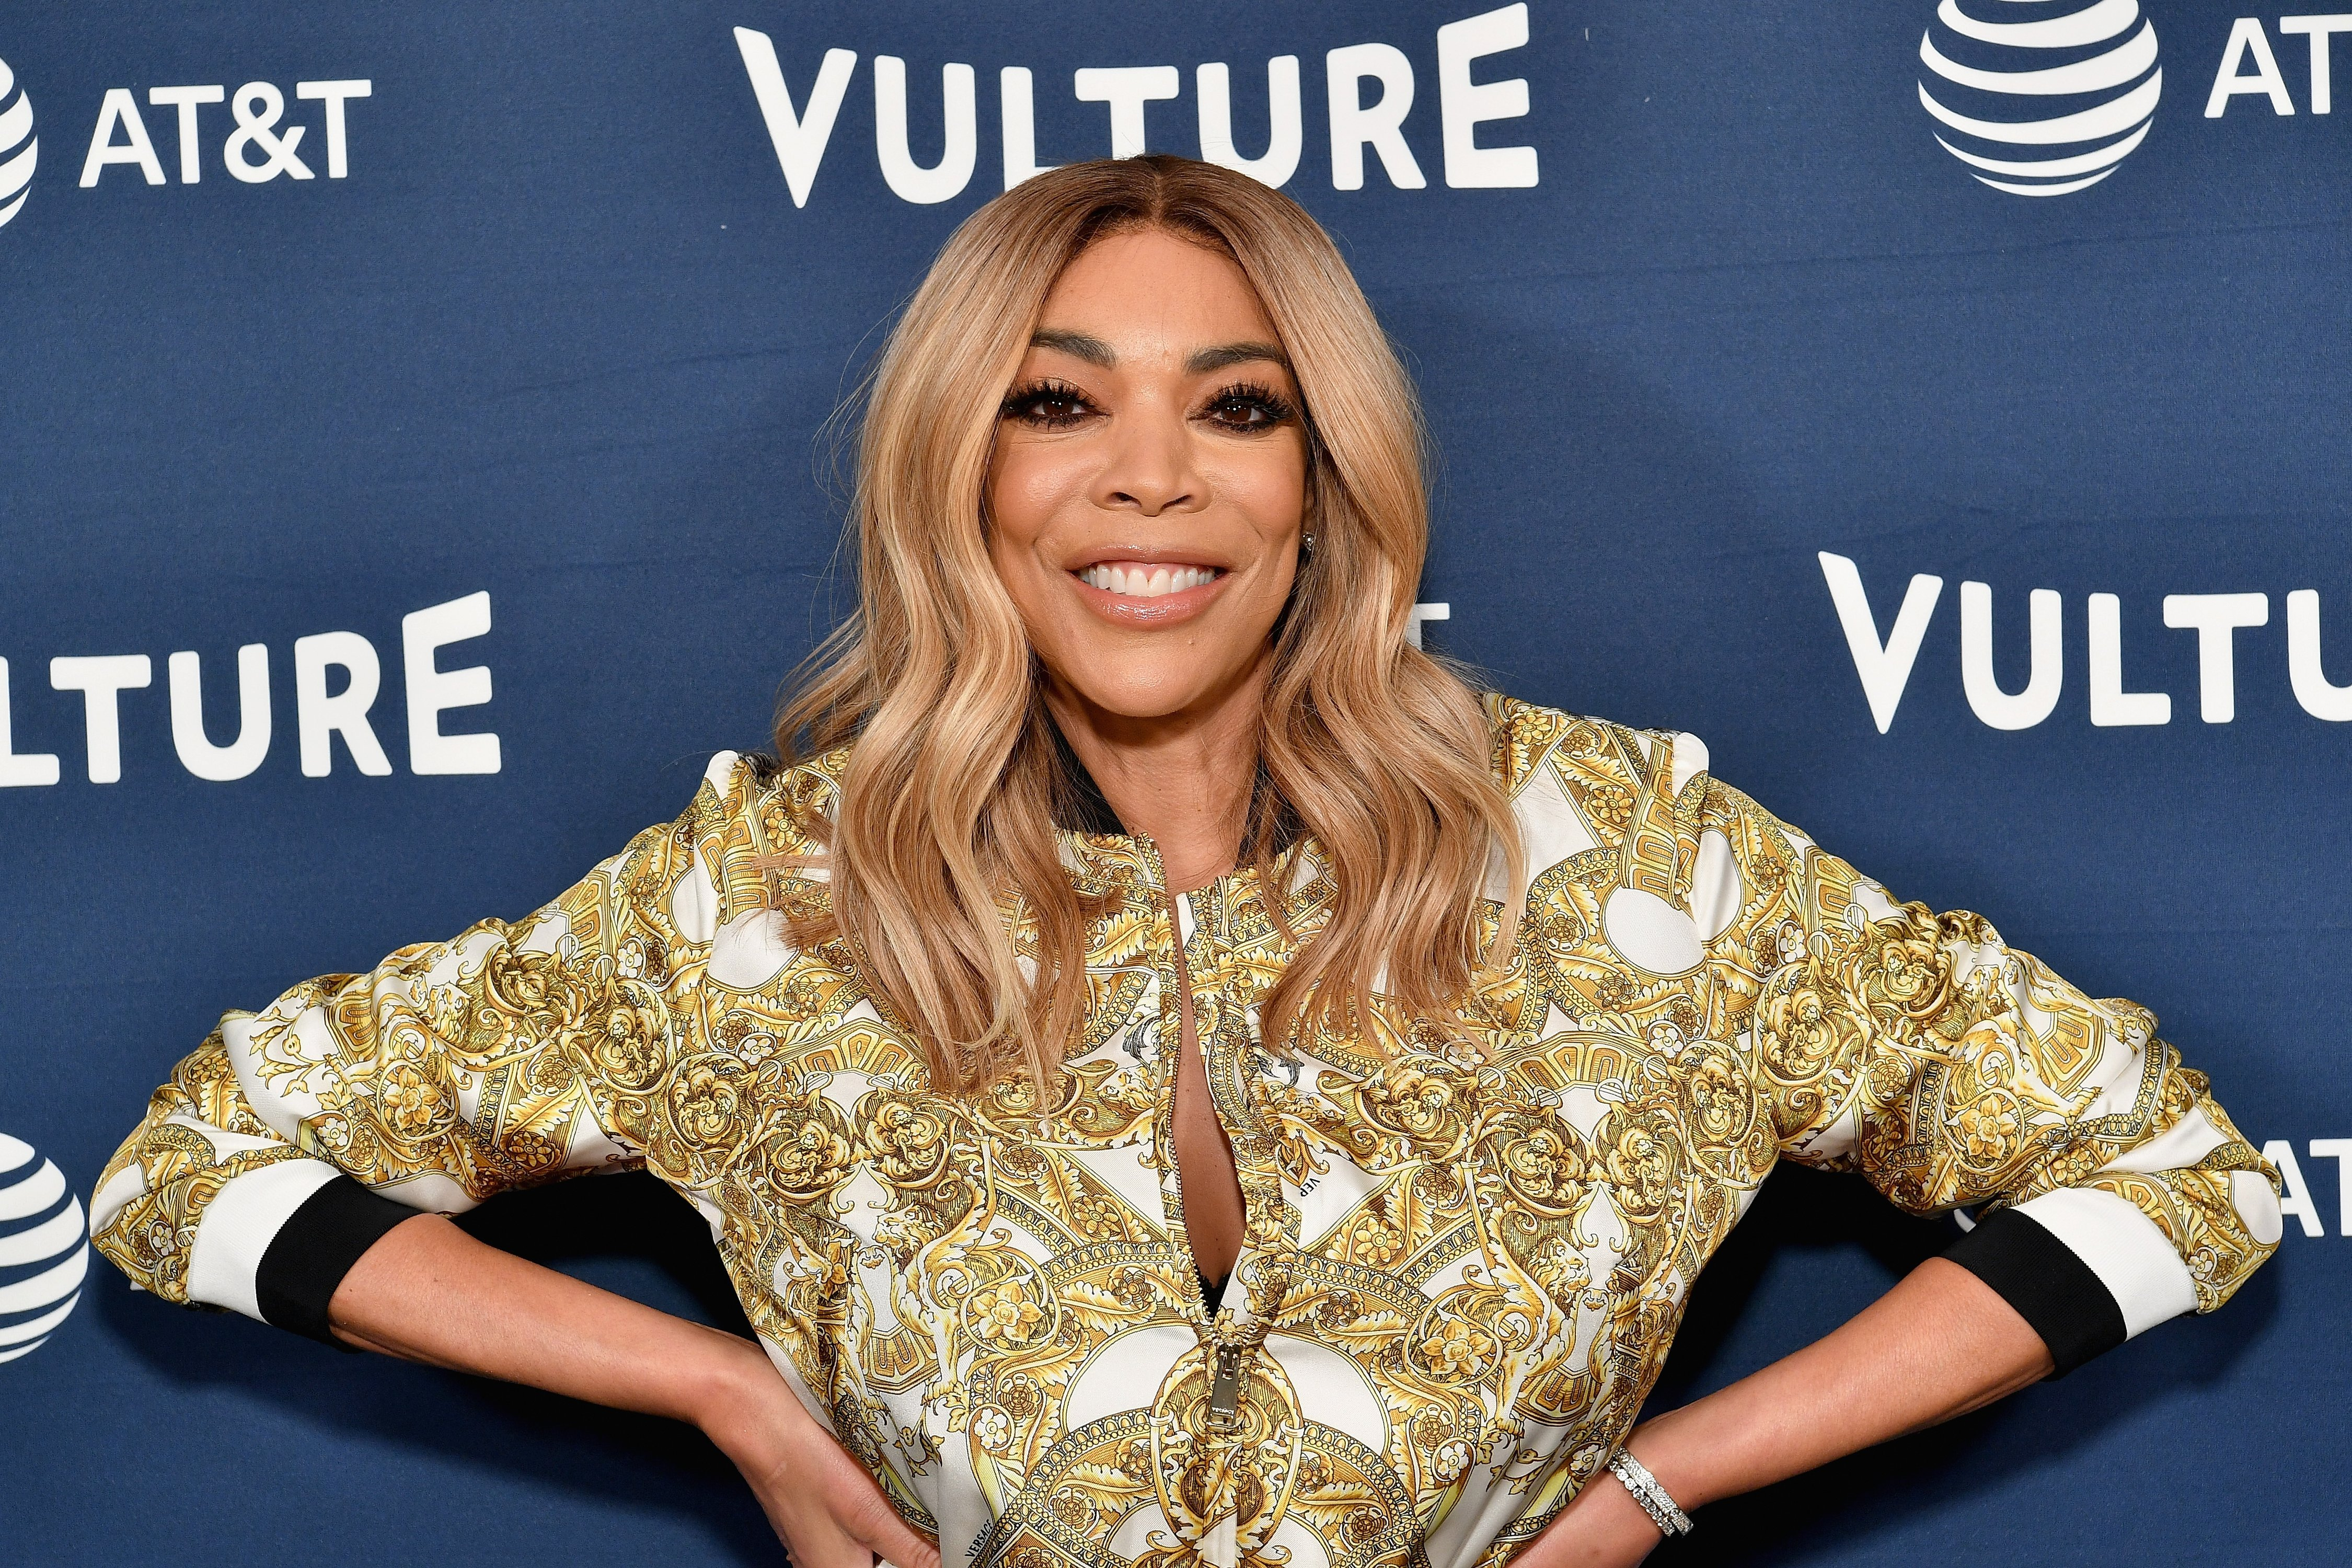 Wendy Williams at the Vulture Festival on May 19, 2018 in New York City | Photo: Getty Images